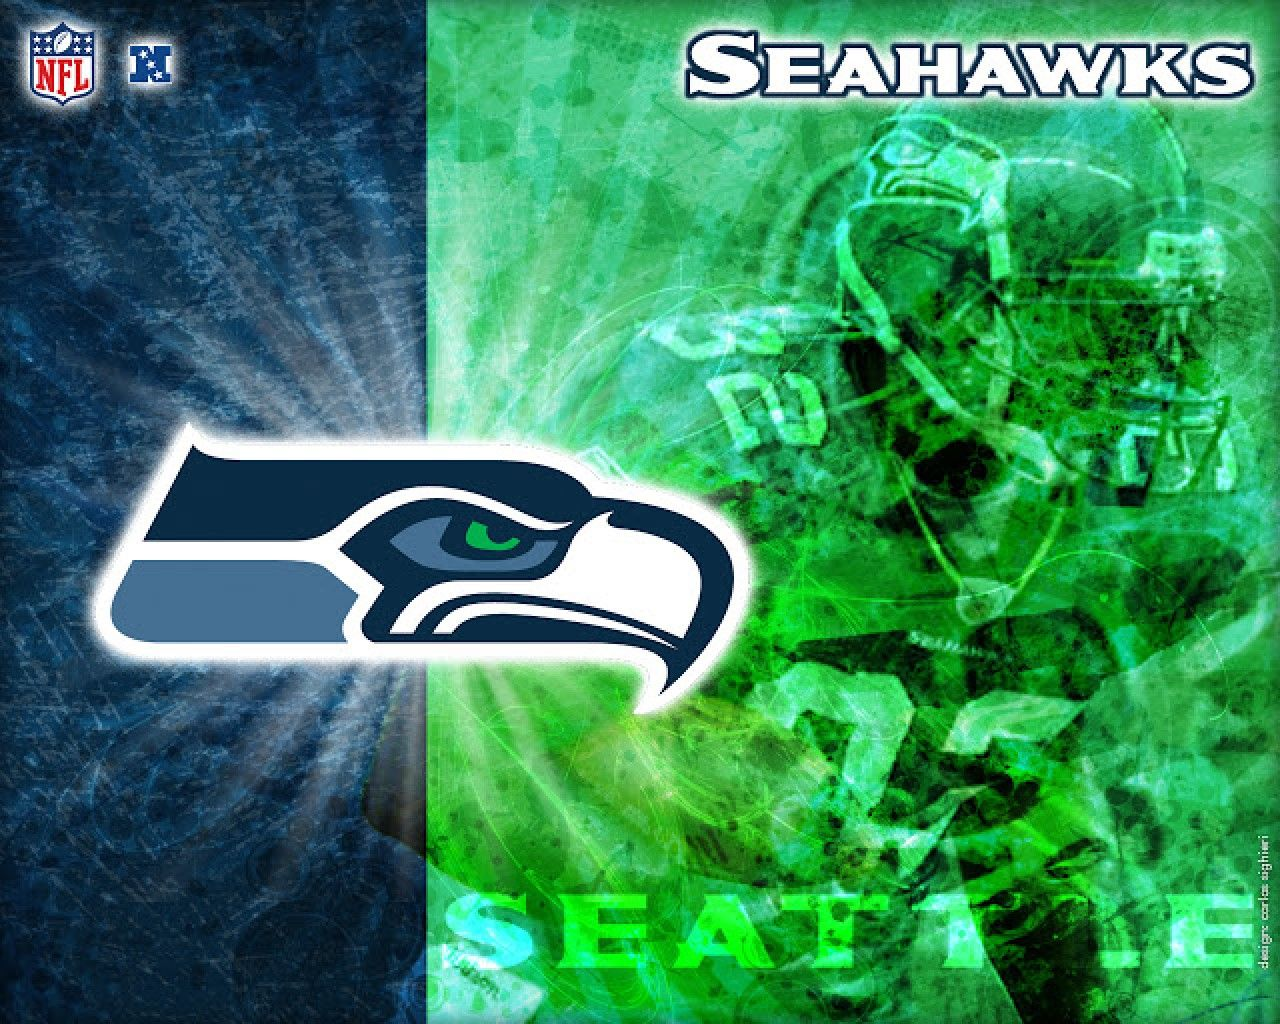 Seattle Seahawks Iphone Wallpaper Wallpapers 640x512PX